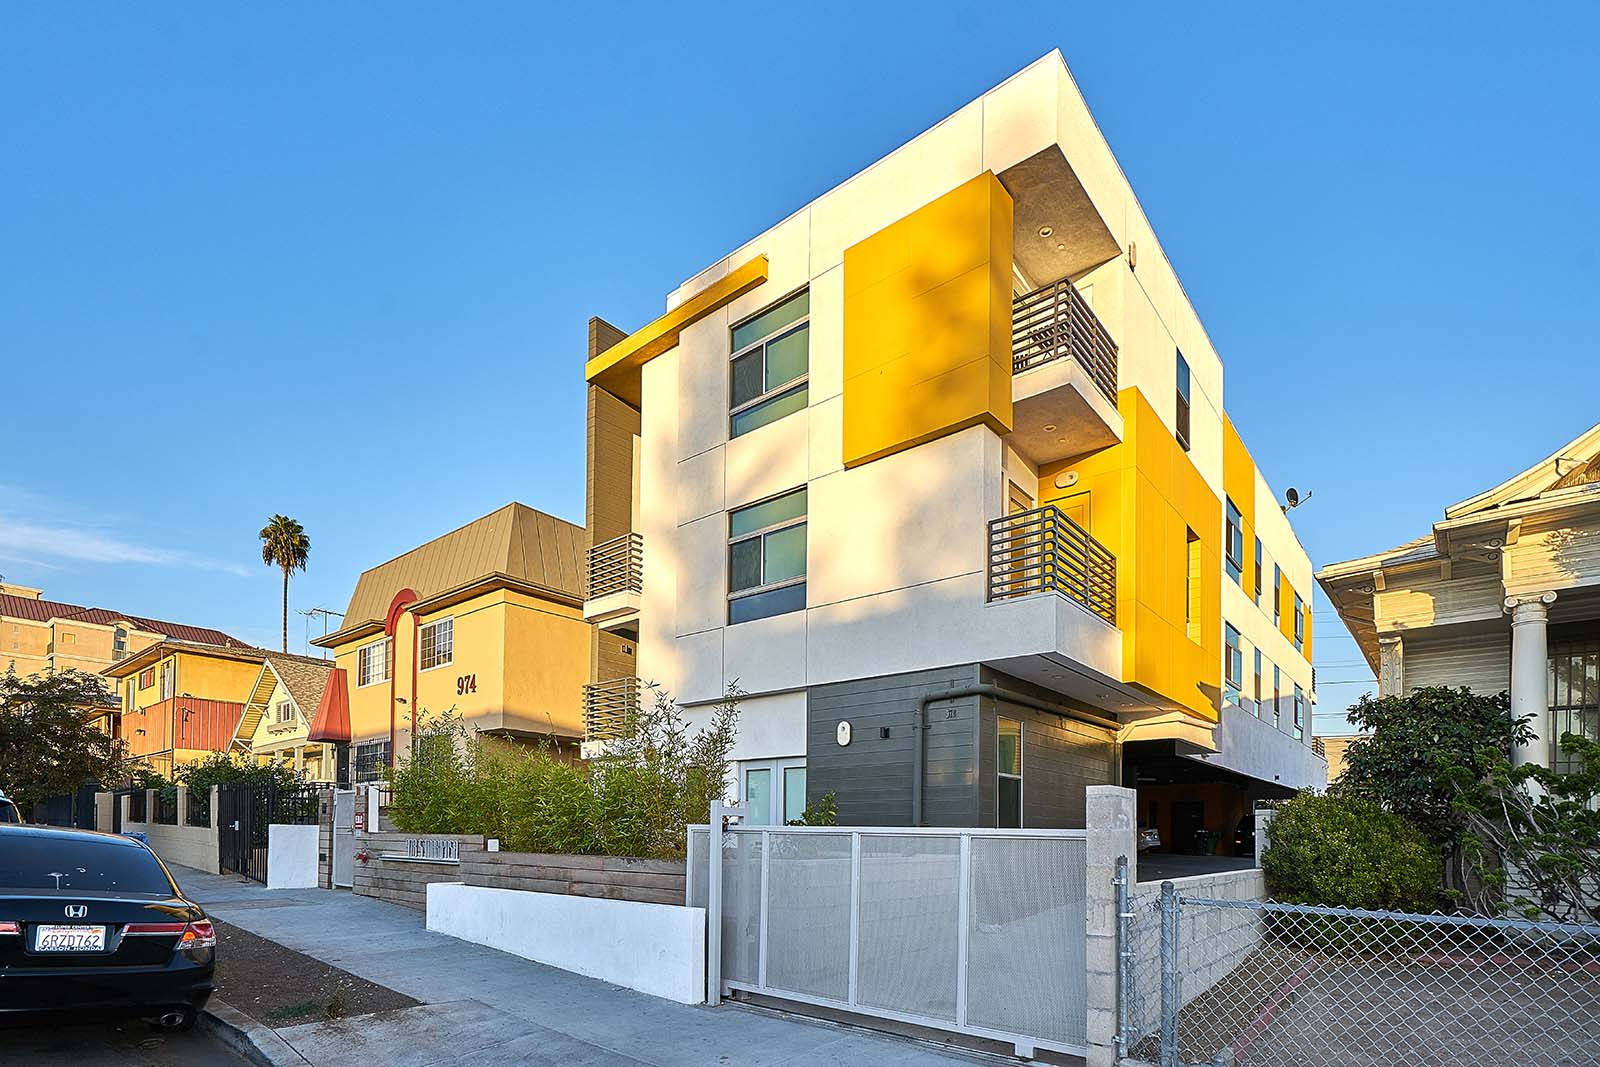 978 SOUTH MARIPOSA AVENUE, LOS ANGELES, CA 90006 - - Type: Low-Rise Apartments- Asking Price: $3,780,000- Building: 5,375 SF- Land: 5,906 SF- Year Built: 2017